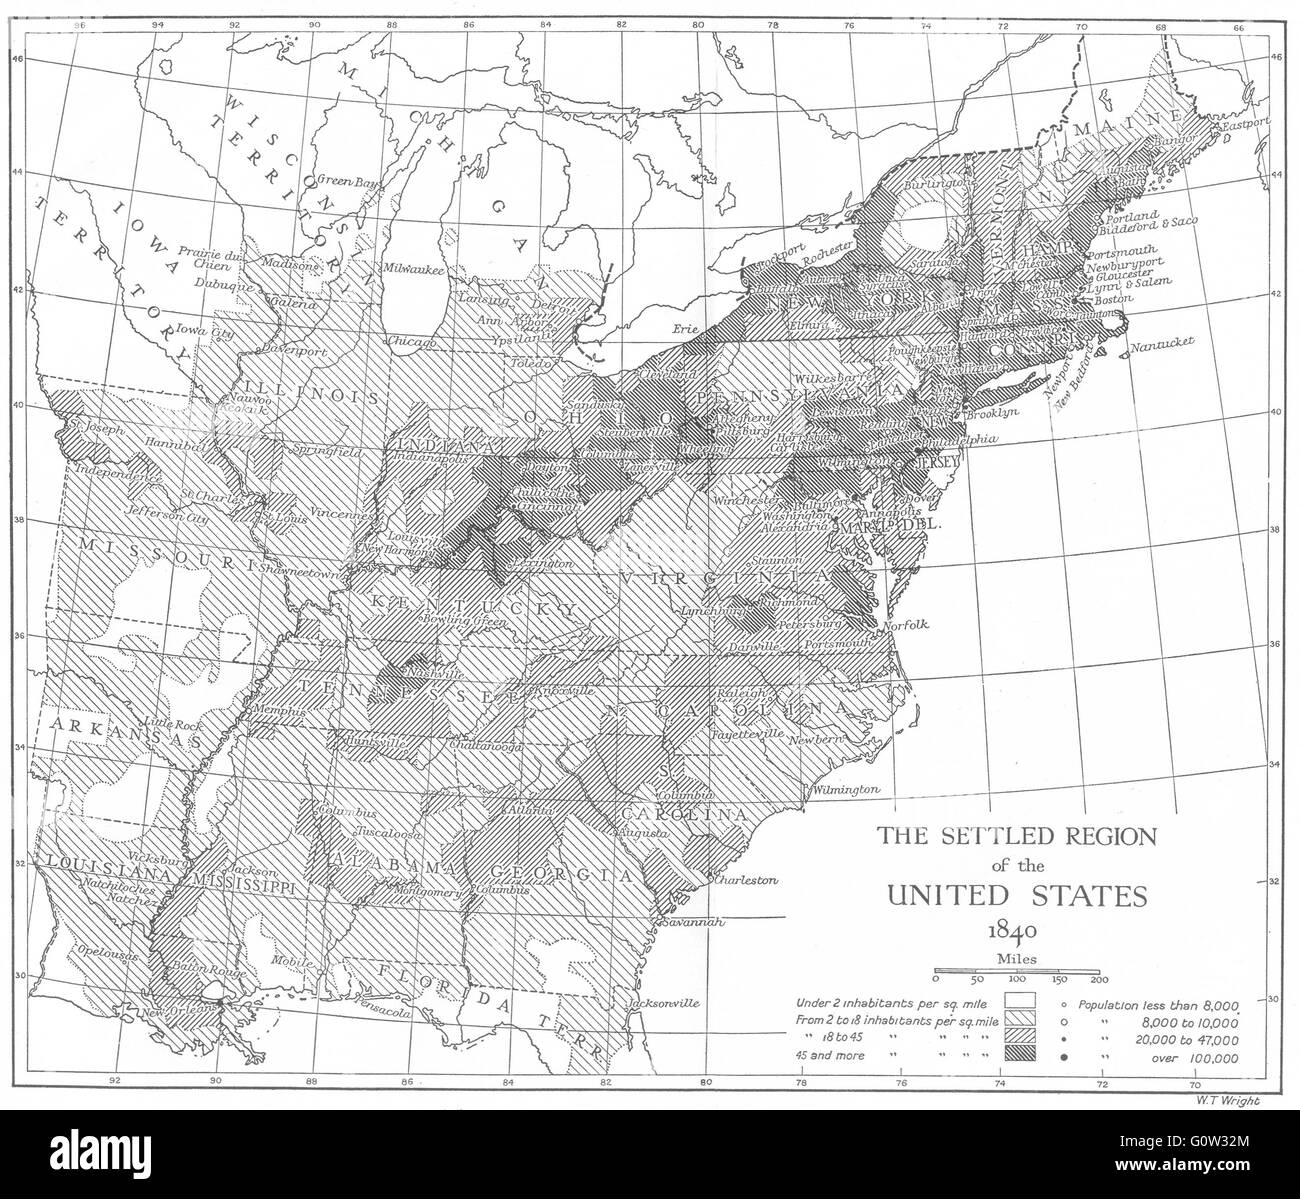 USA Northern States Settled Region Of US - Us map 1840